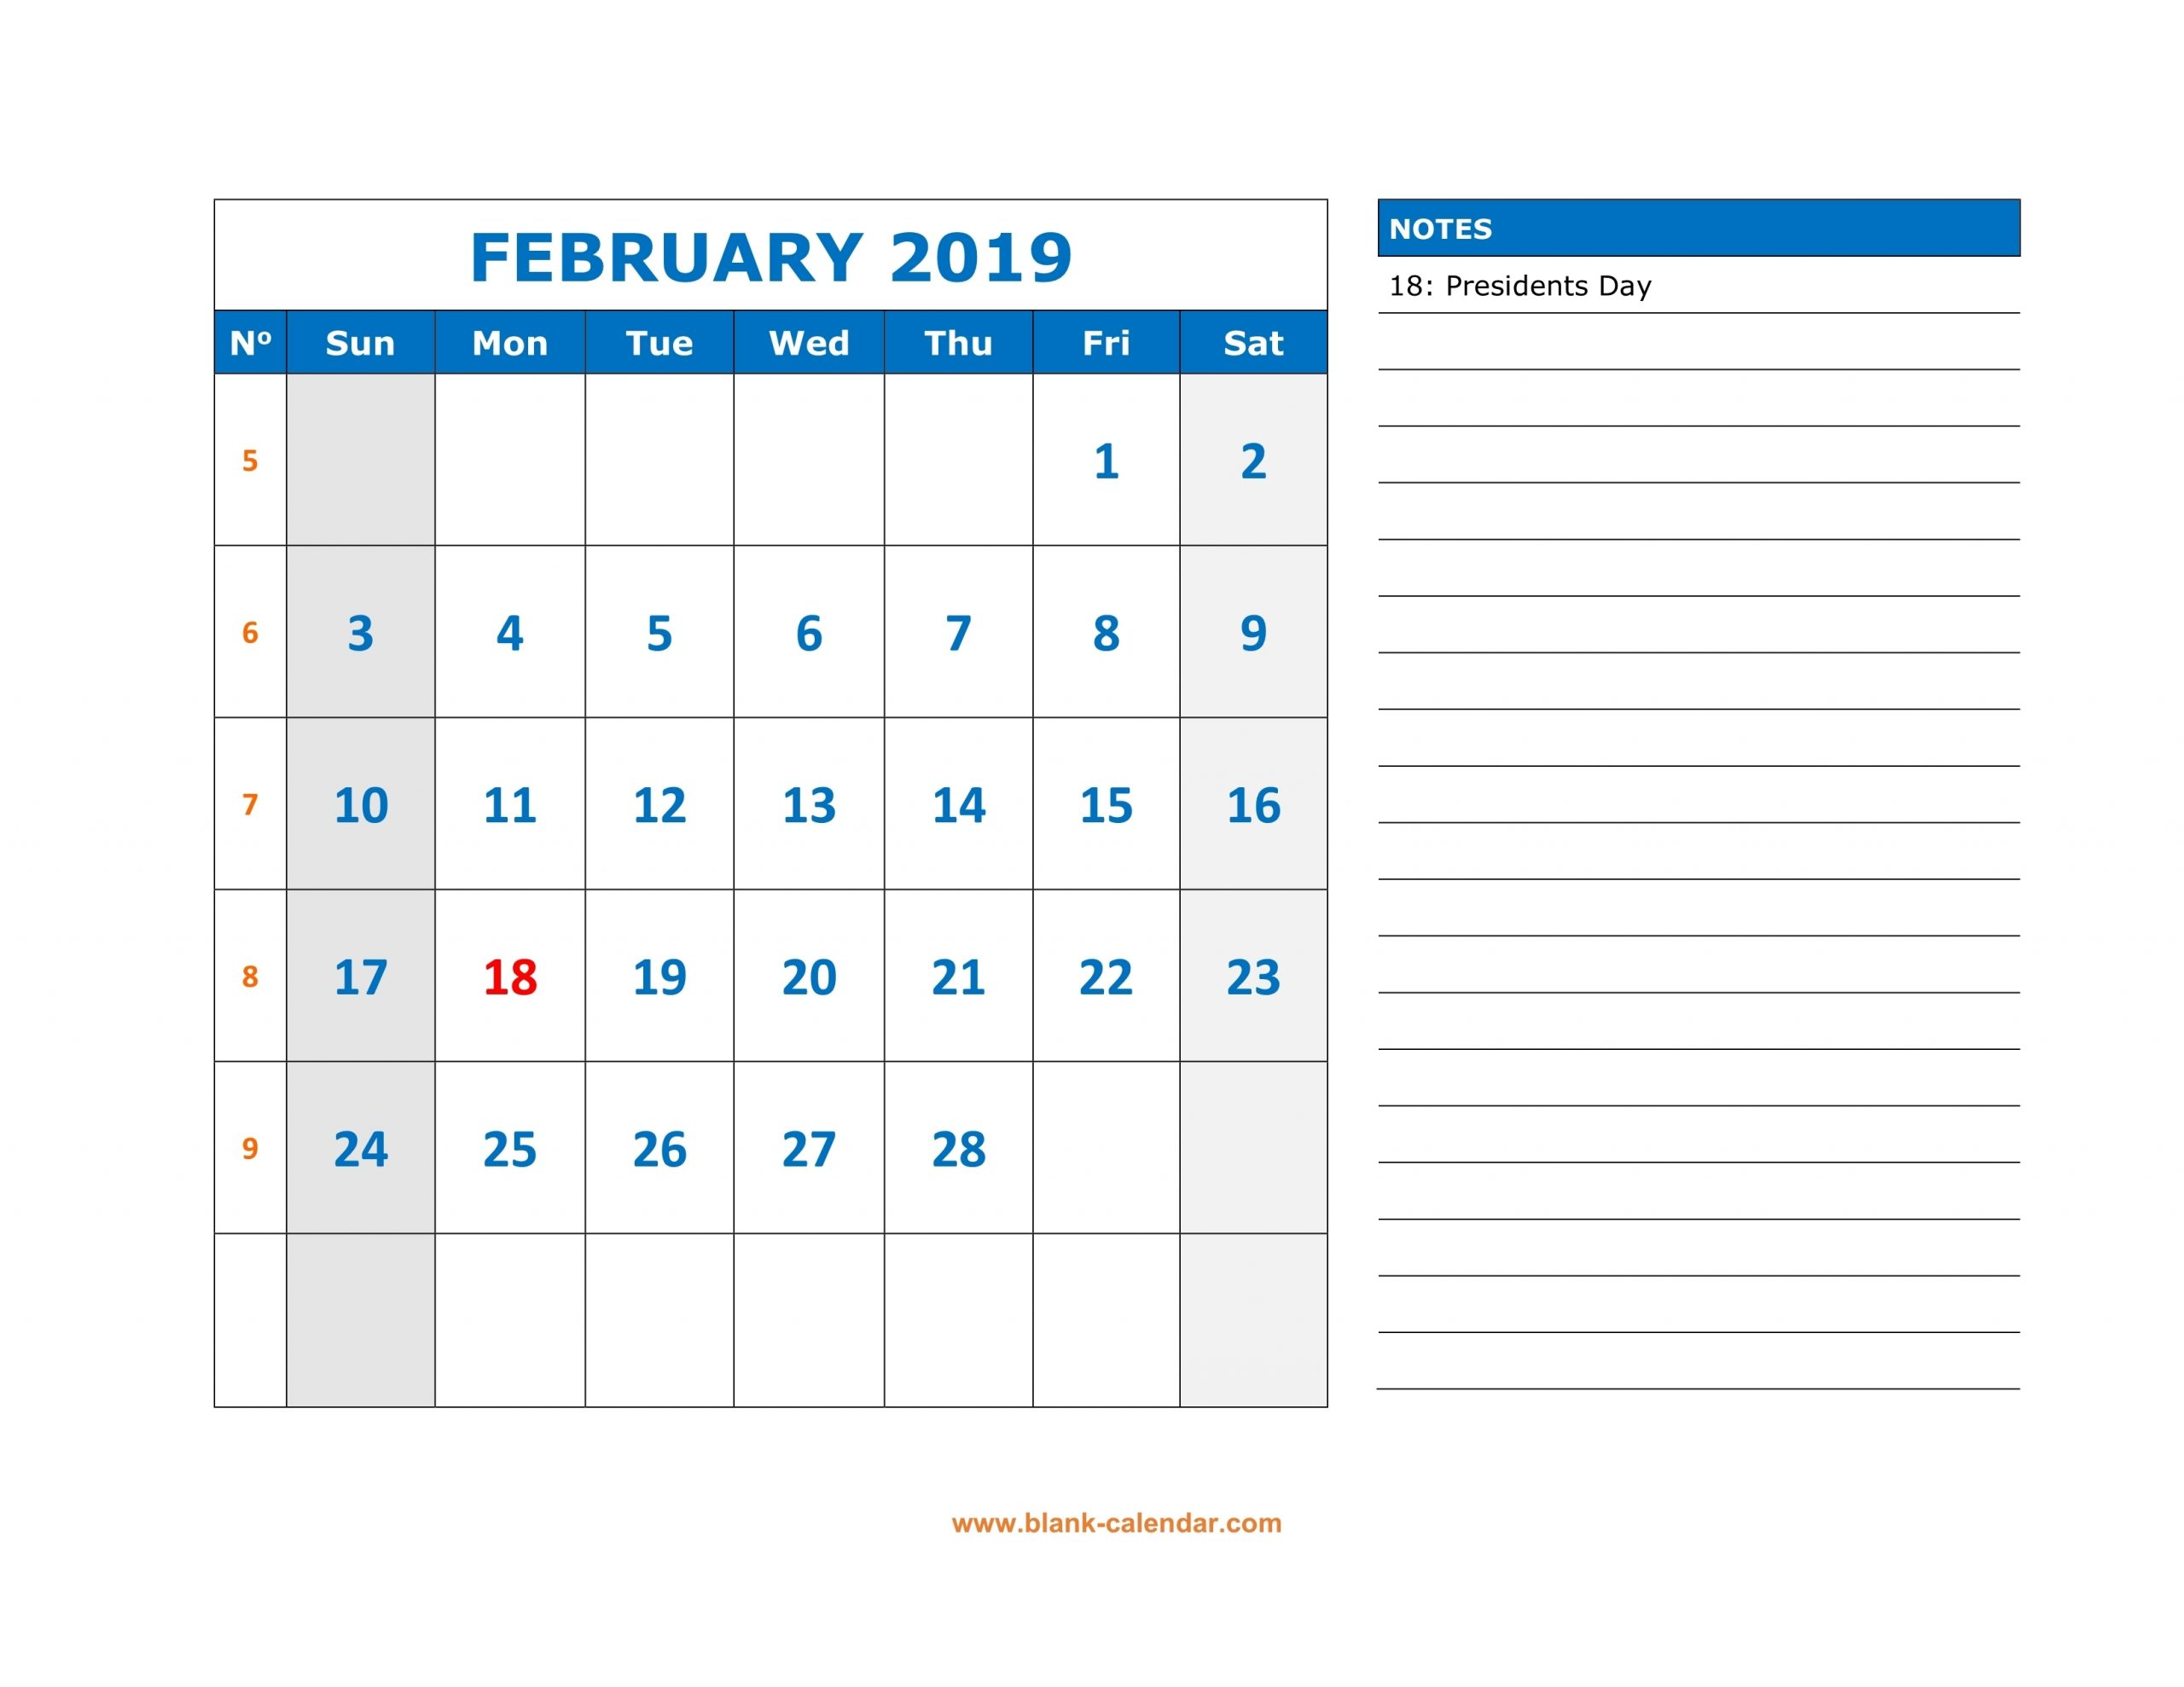 February 2019 Calendar With Notes